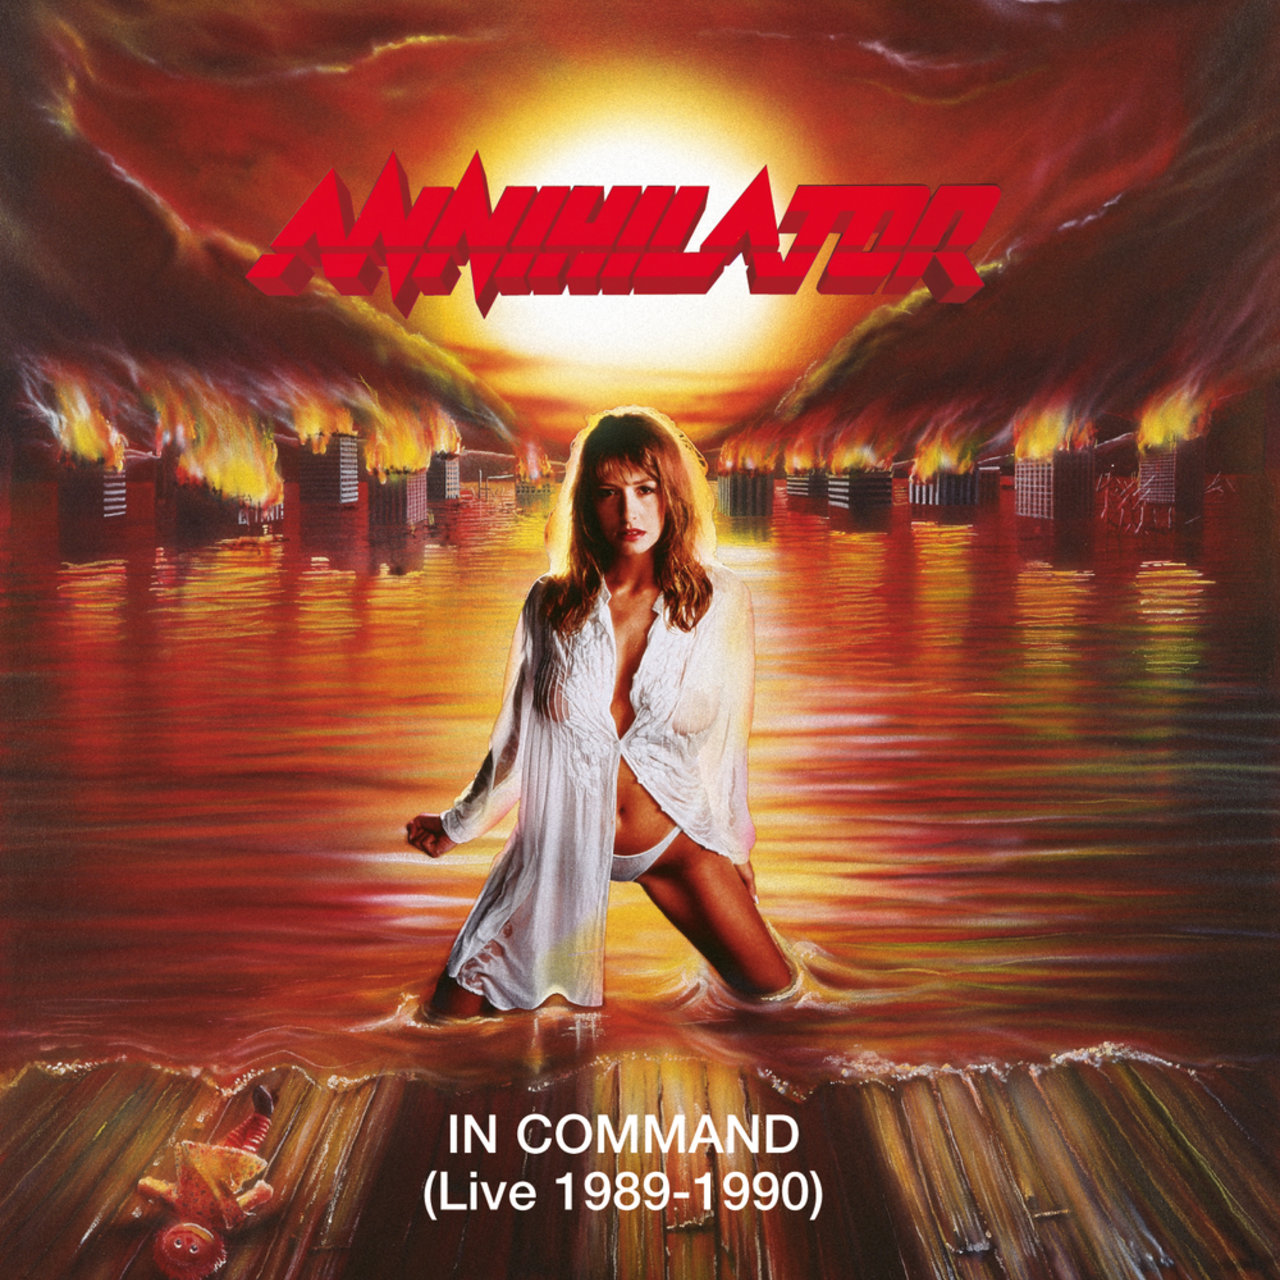 In Command: Live 1989-1990